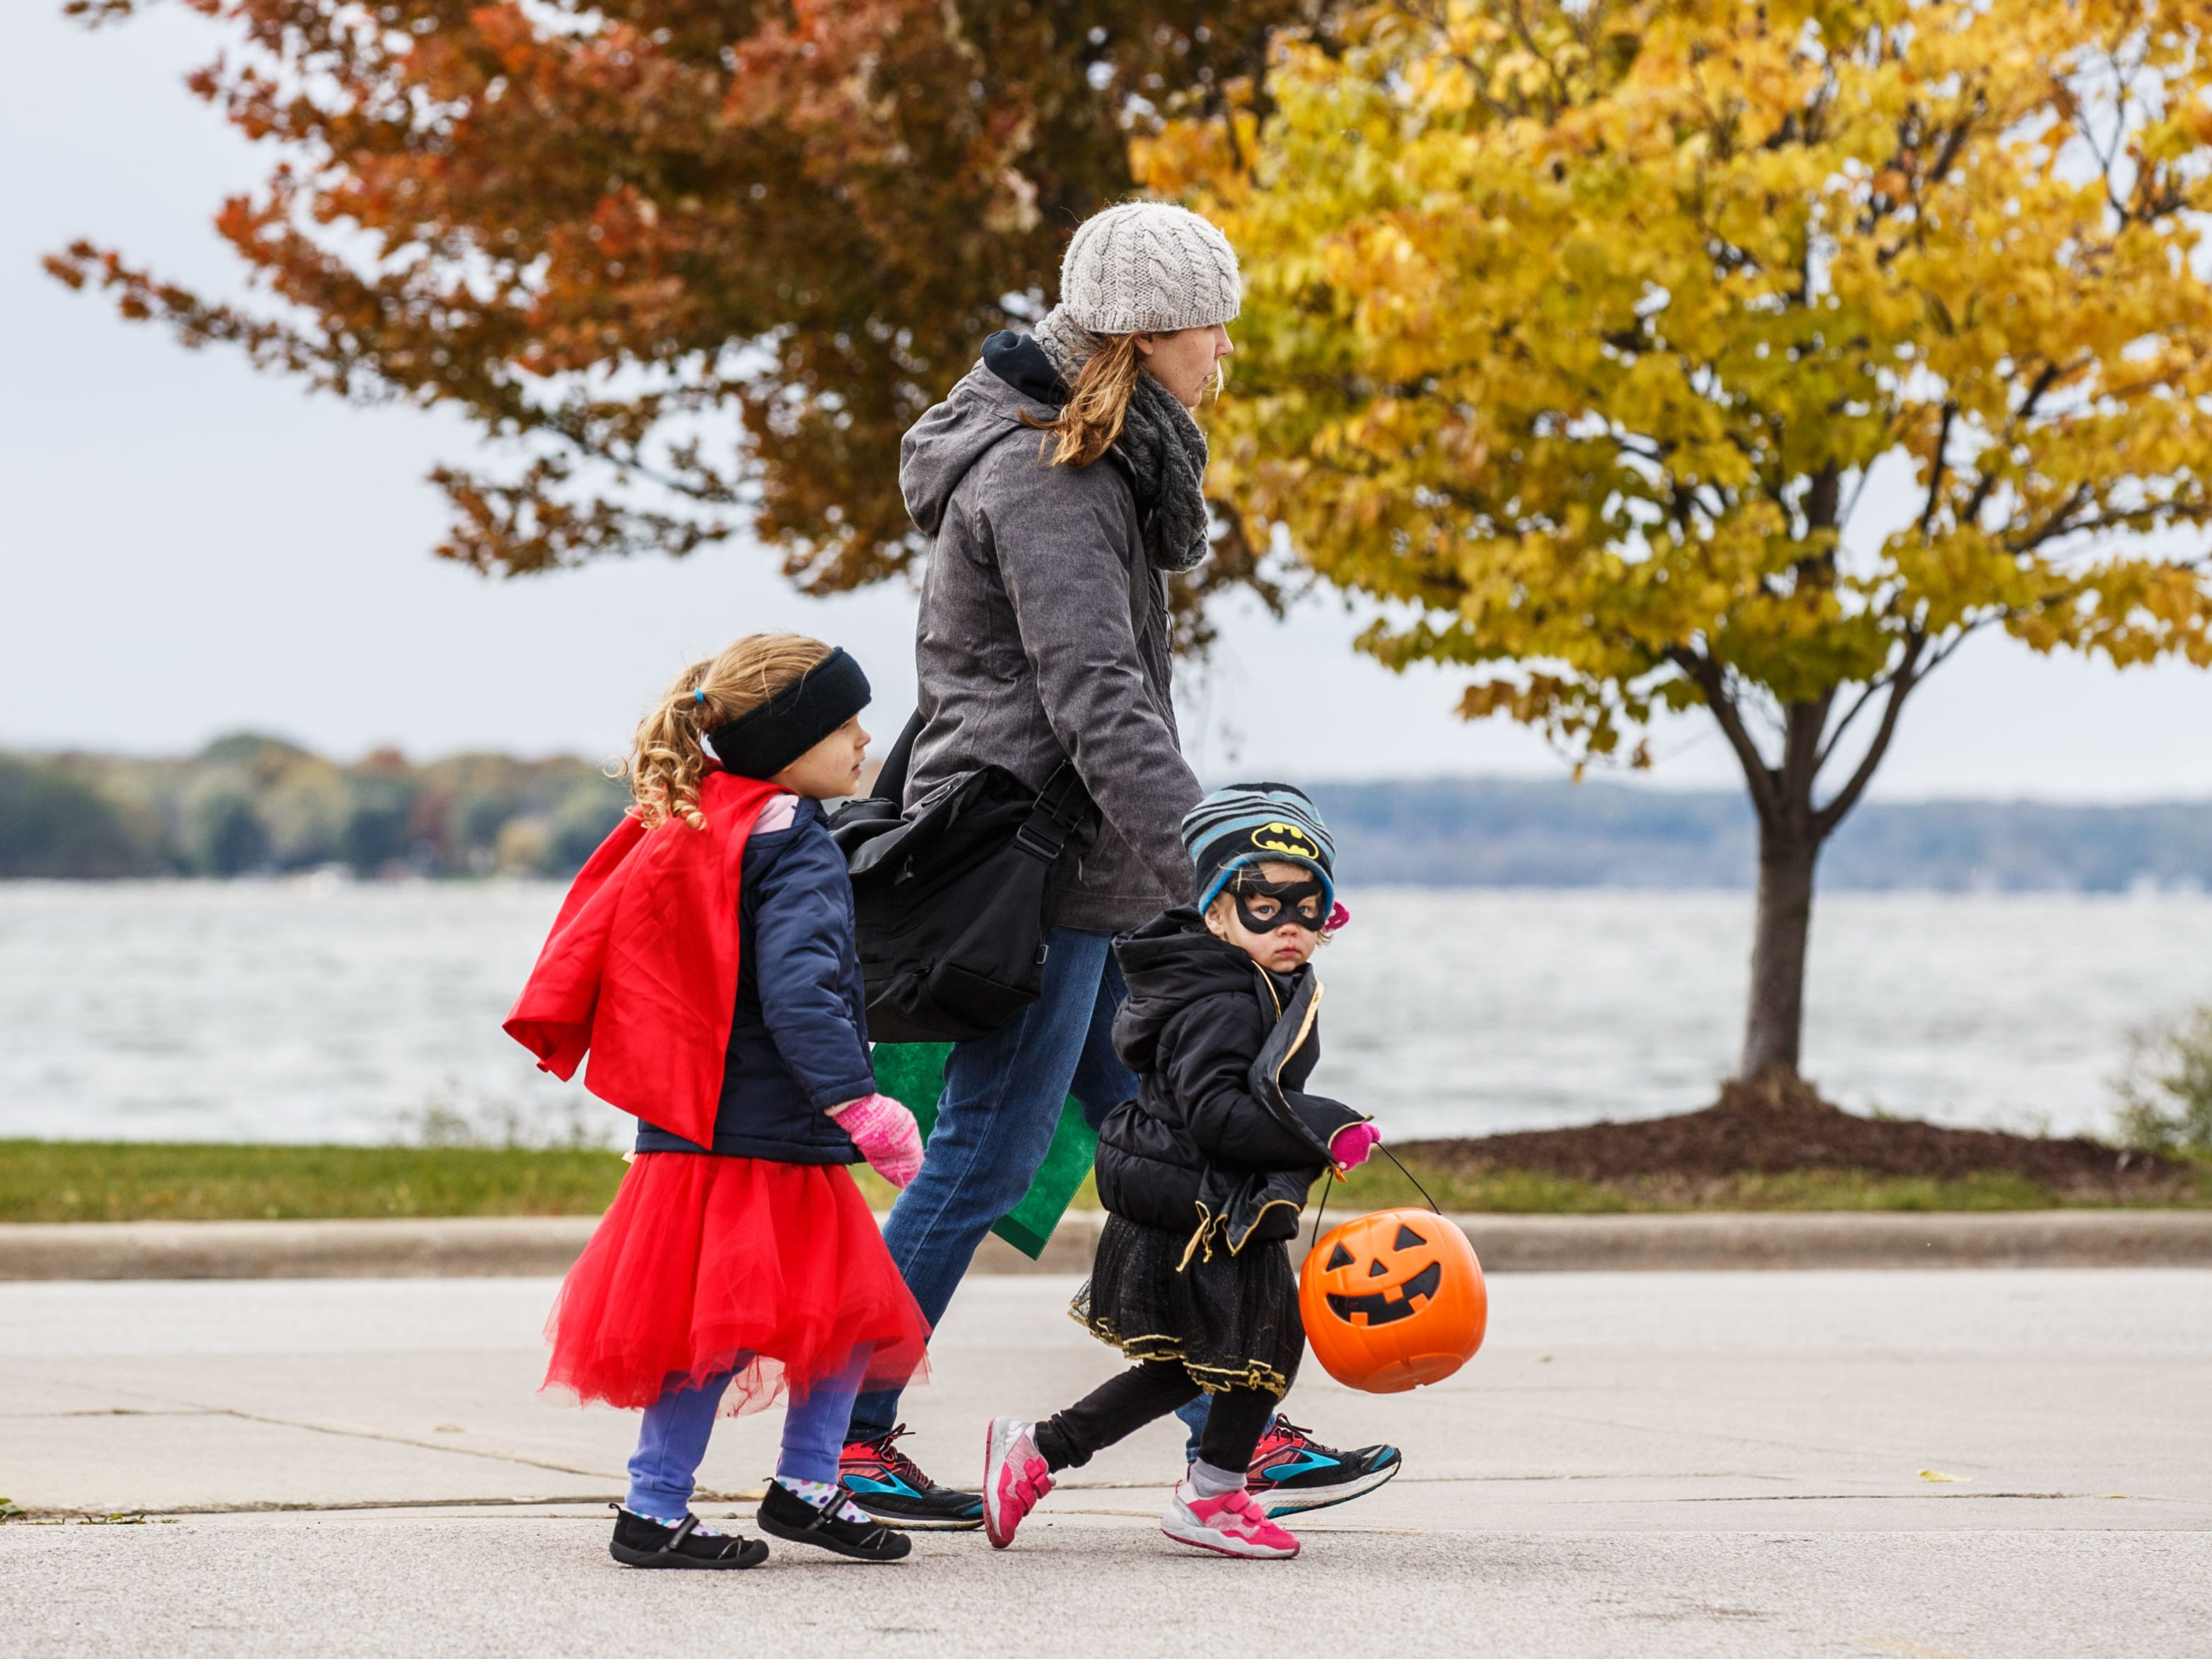 Trick-or-treaters are not deterred by a little snow, wind or chilly temperatures as they participate in the annual Halloween Fun Fest at Pewaukee's lakefront on Saturday, Oct. 20, 2018. The event, hosted by Positively Pewaukee, features a dog costume contest, trick-or-treating, games, crafts and fun from local nonprofits, churches and businesses.